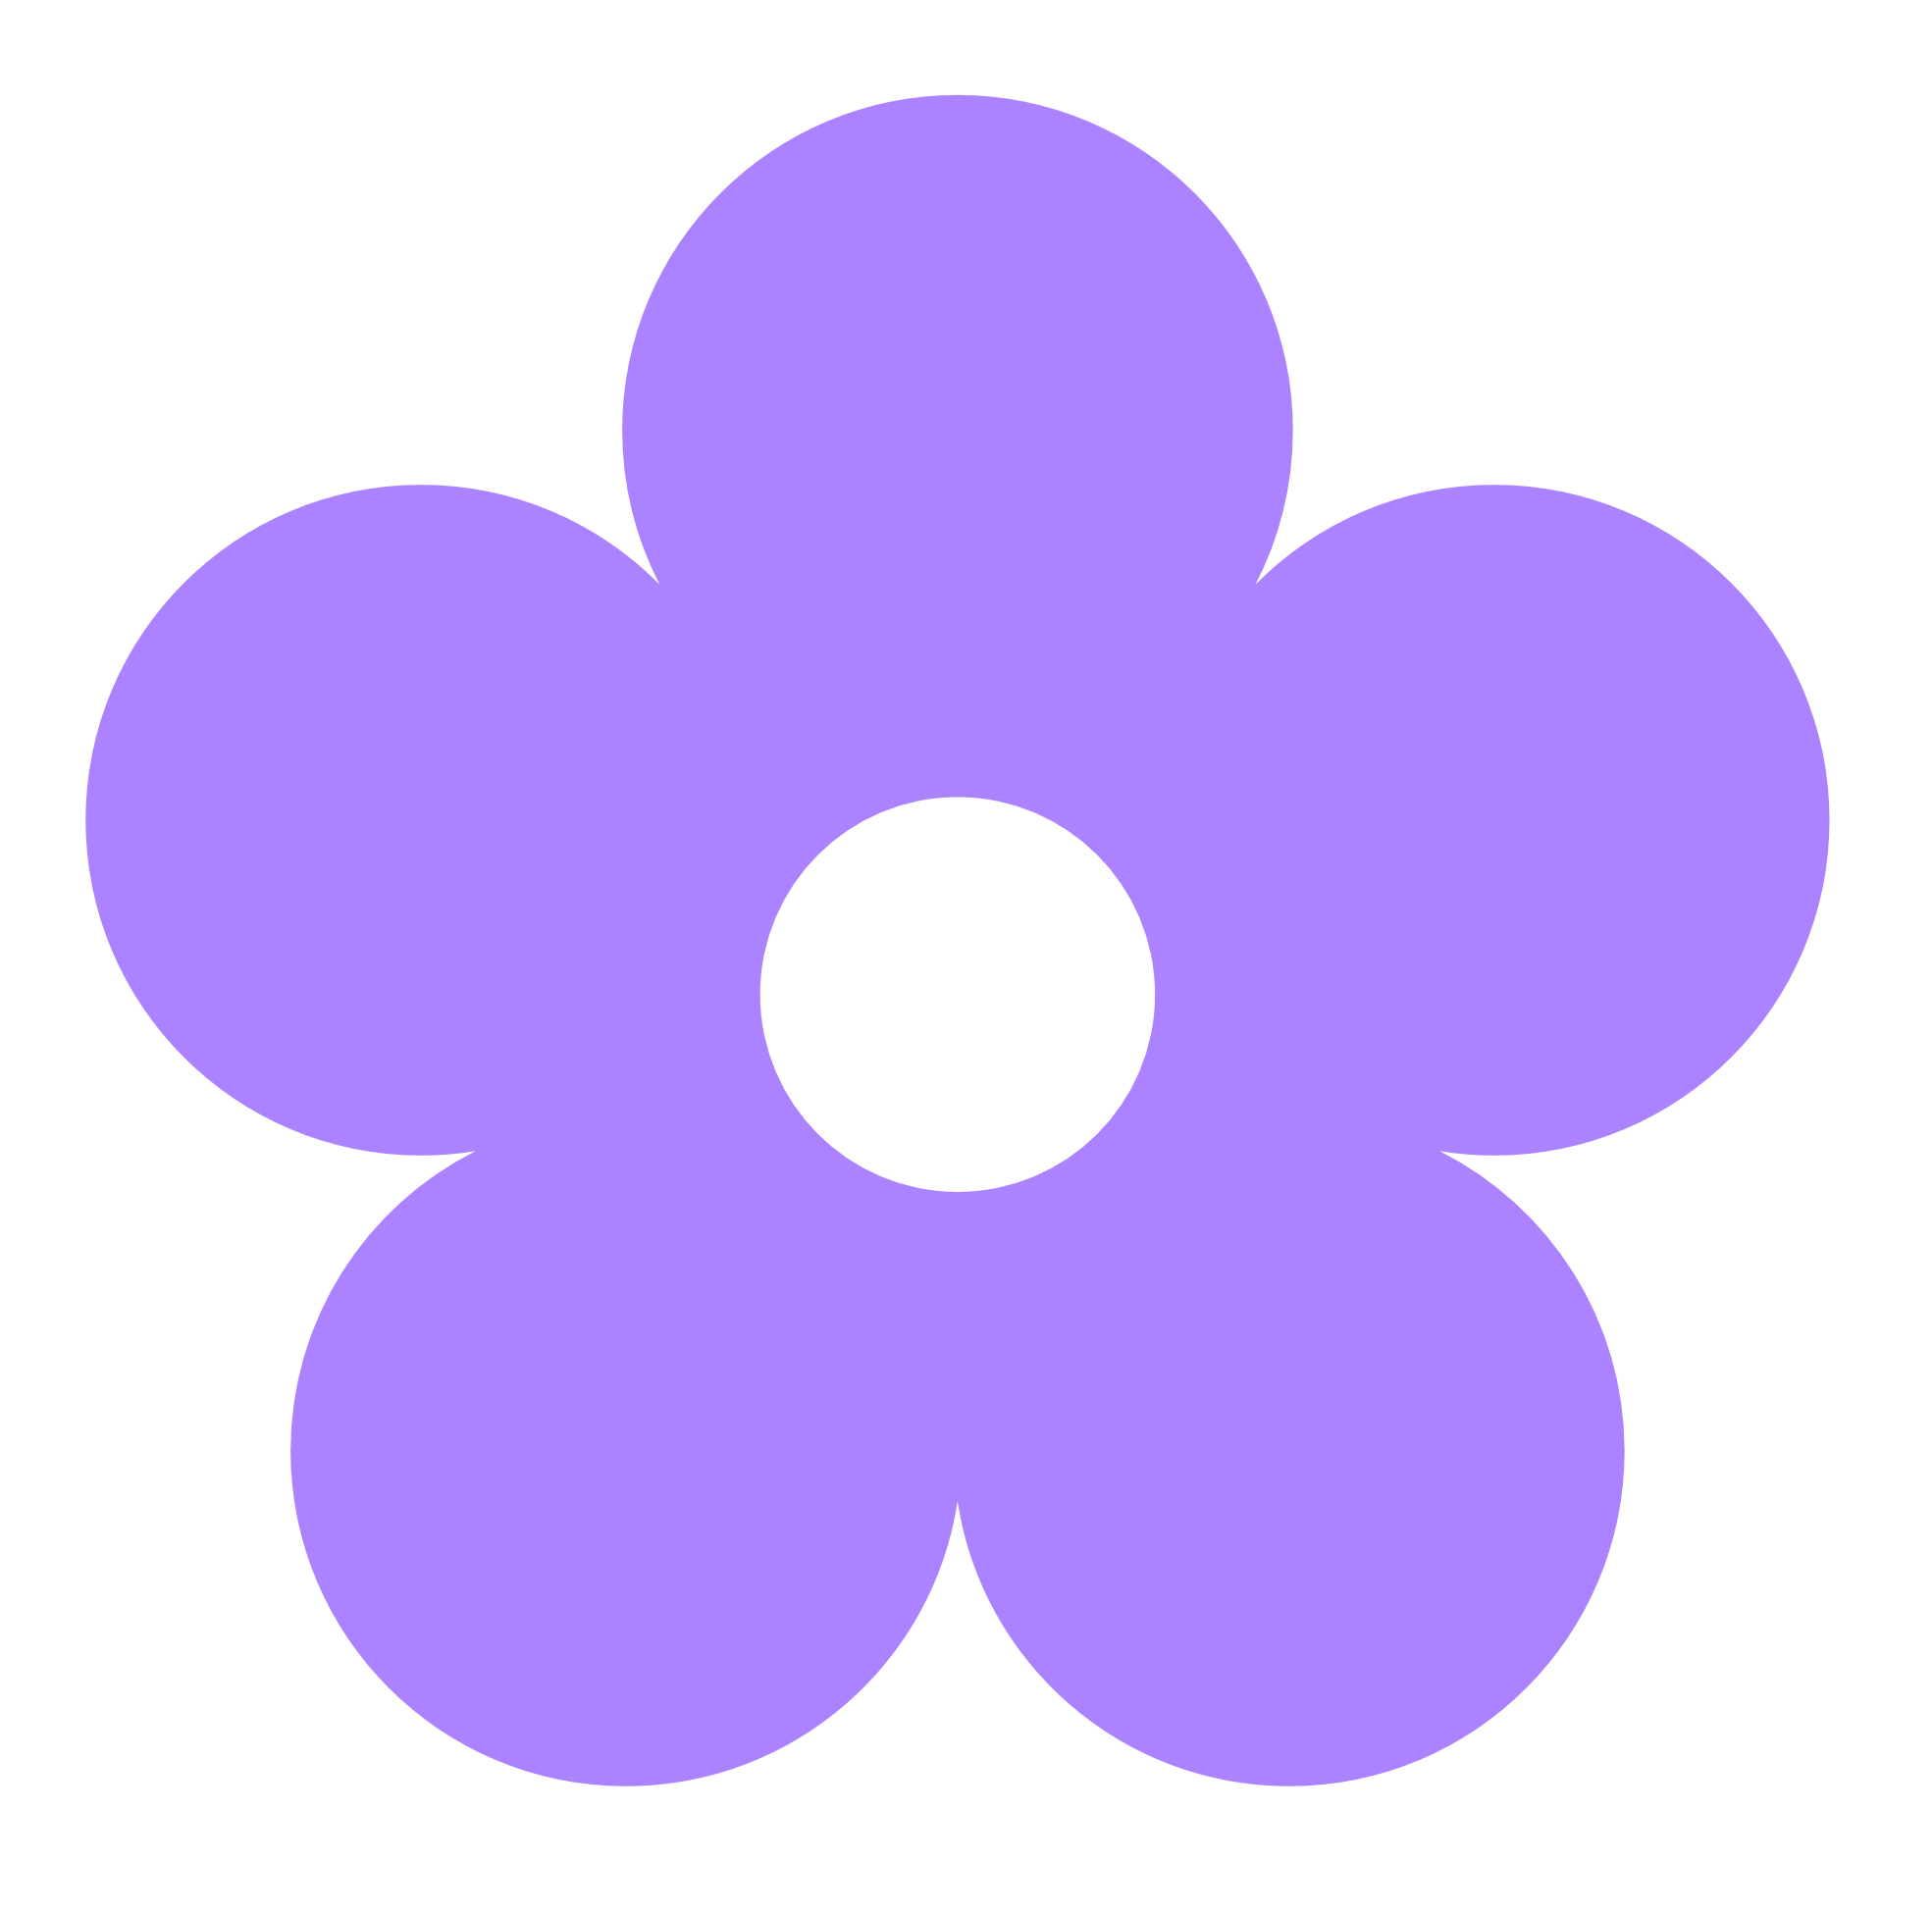 Simple clipart flowers image free stock 100+ Simple Flower Clip Art | ClipartLook image free stock